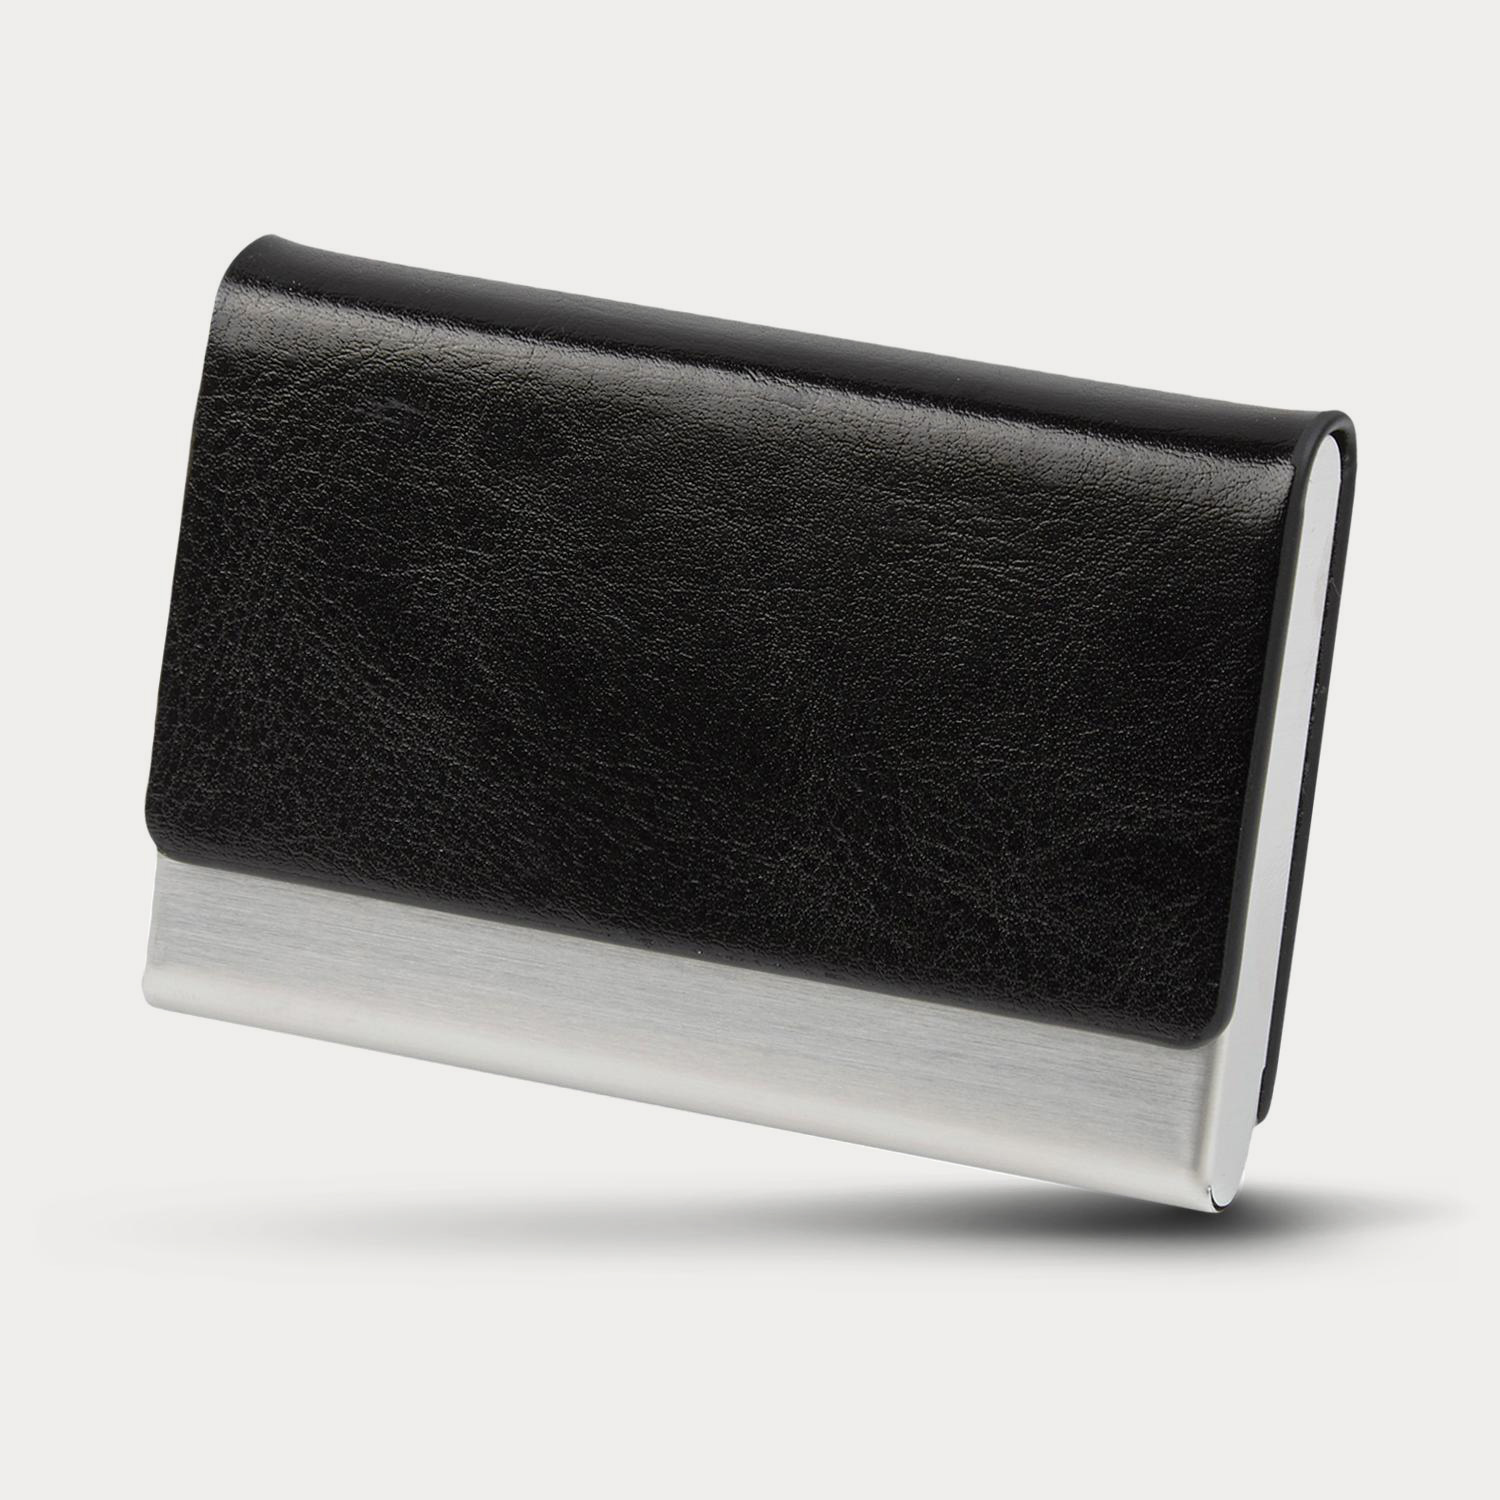 Executive Business Card Holder | PrimoProducts